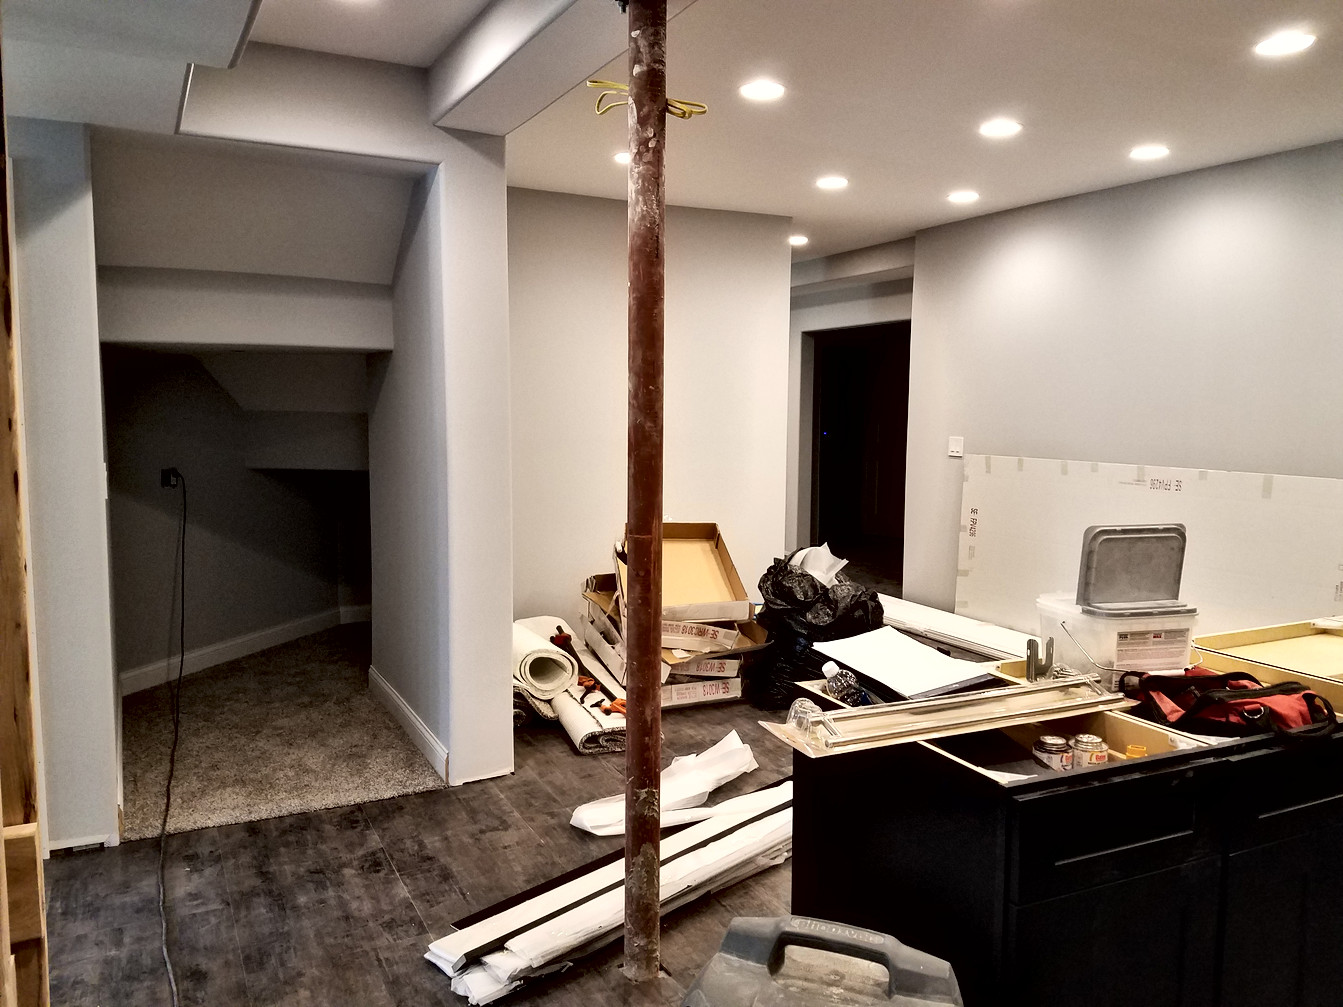 Kitchen Eating Nook Mid-Construction